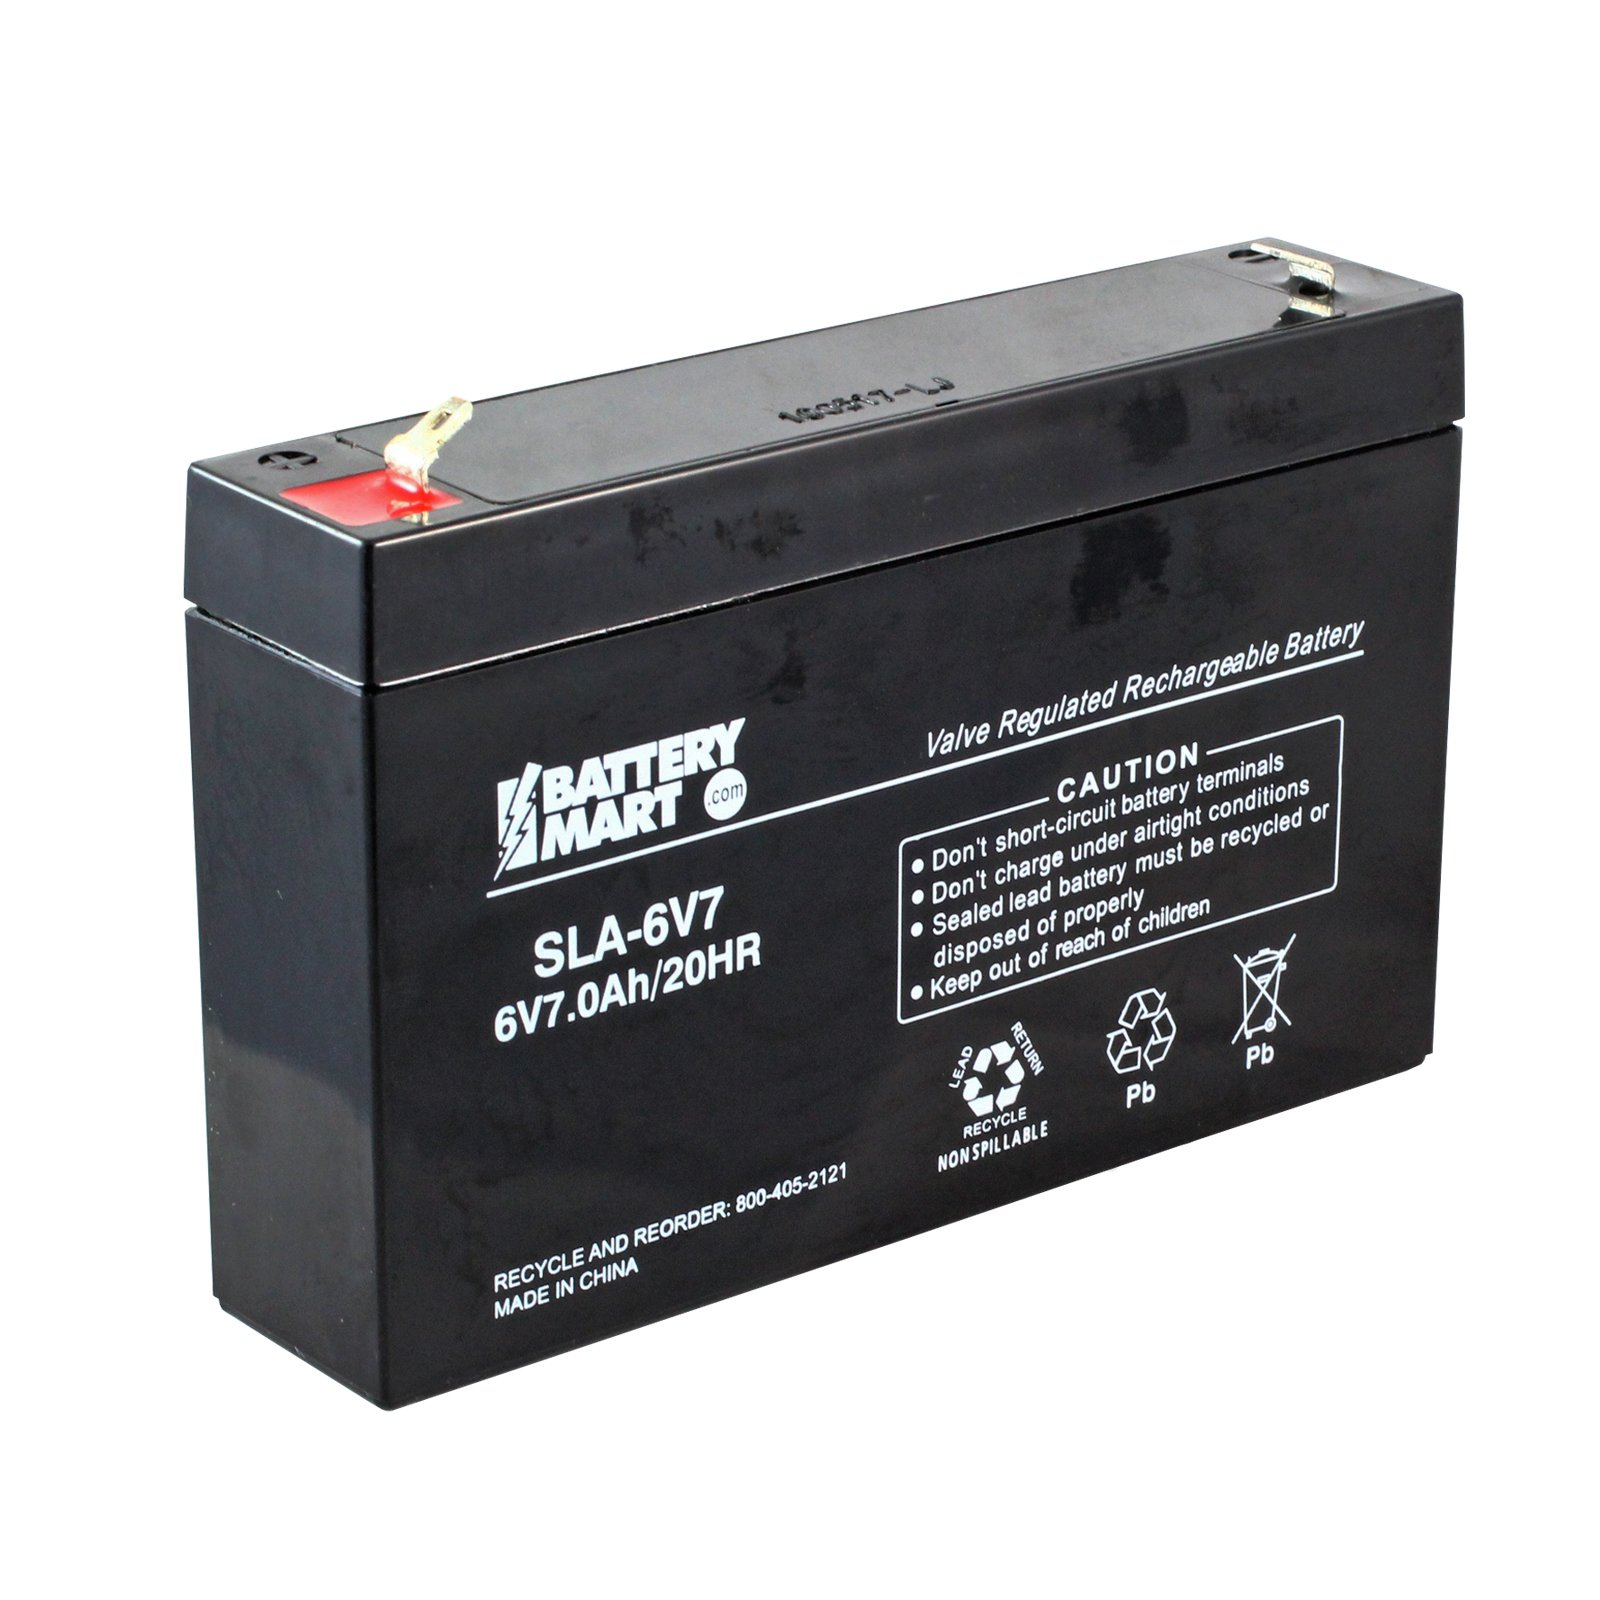 6 volt 7 ah sealed lead acid rechargeable battery f1. Black Bedroom Furniture Sets. Home Design Ideas